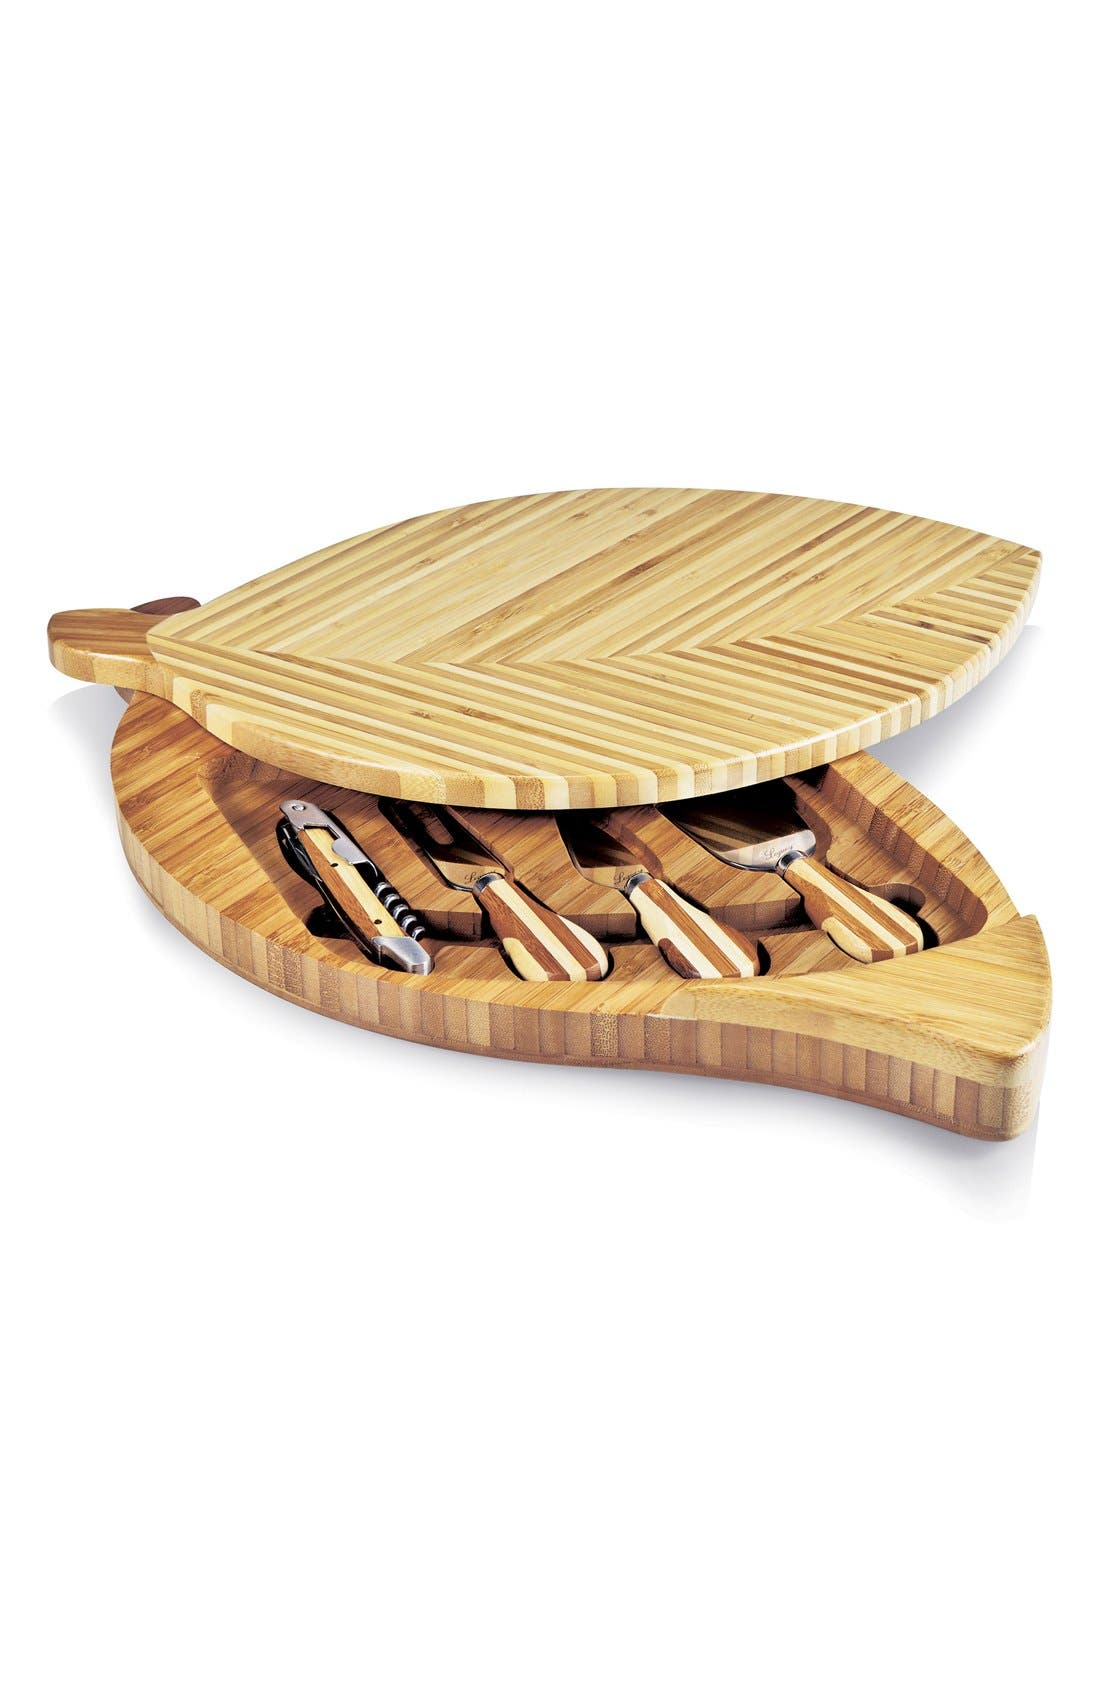 Alternate Image 1 Selected - Picnic Time 'Leaf' Cutting Board & Cheese Tools